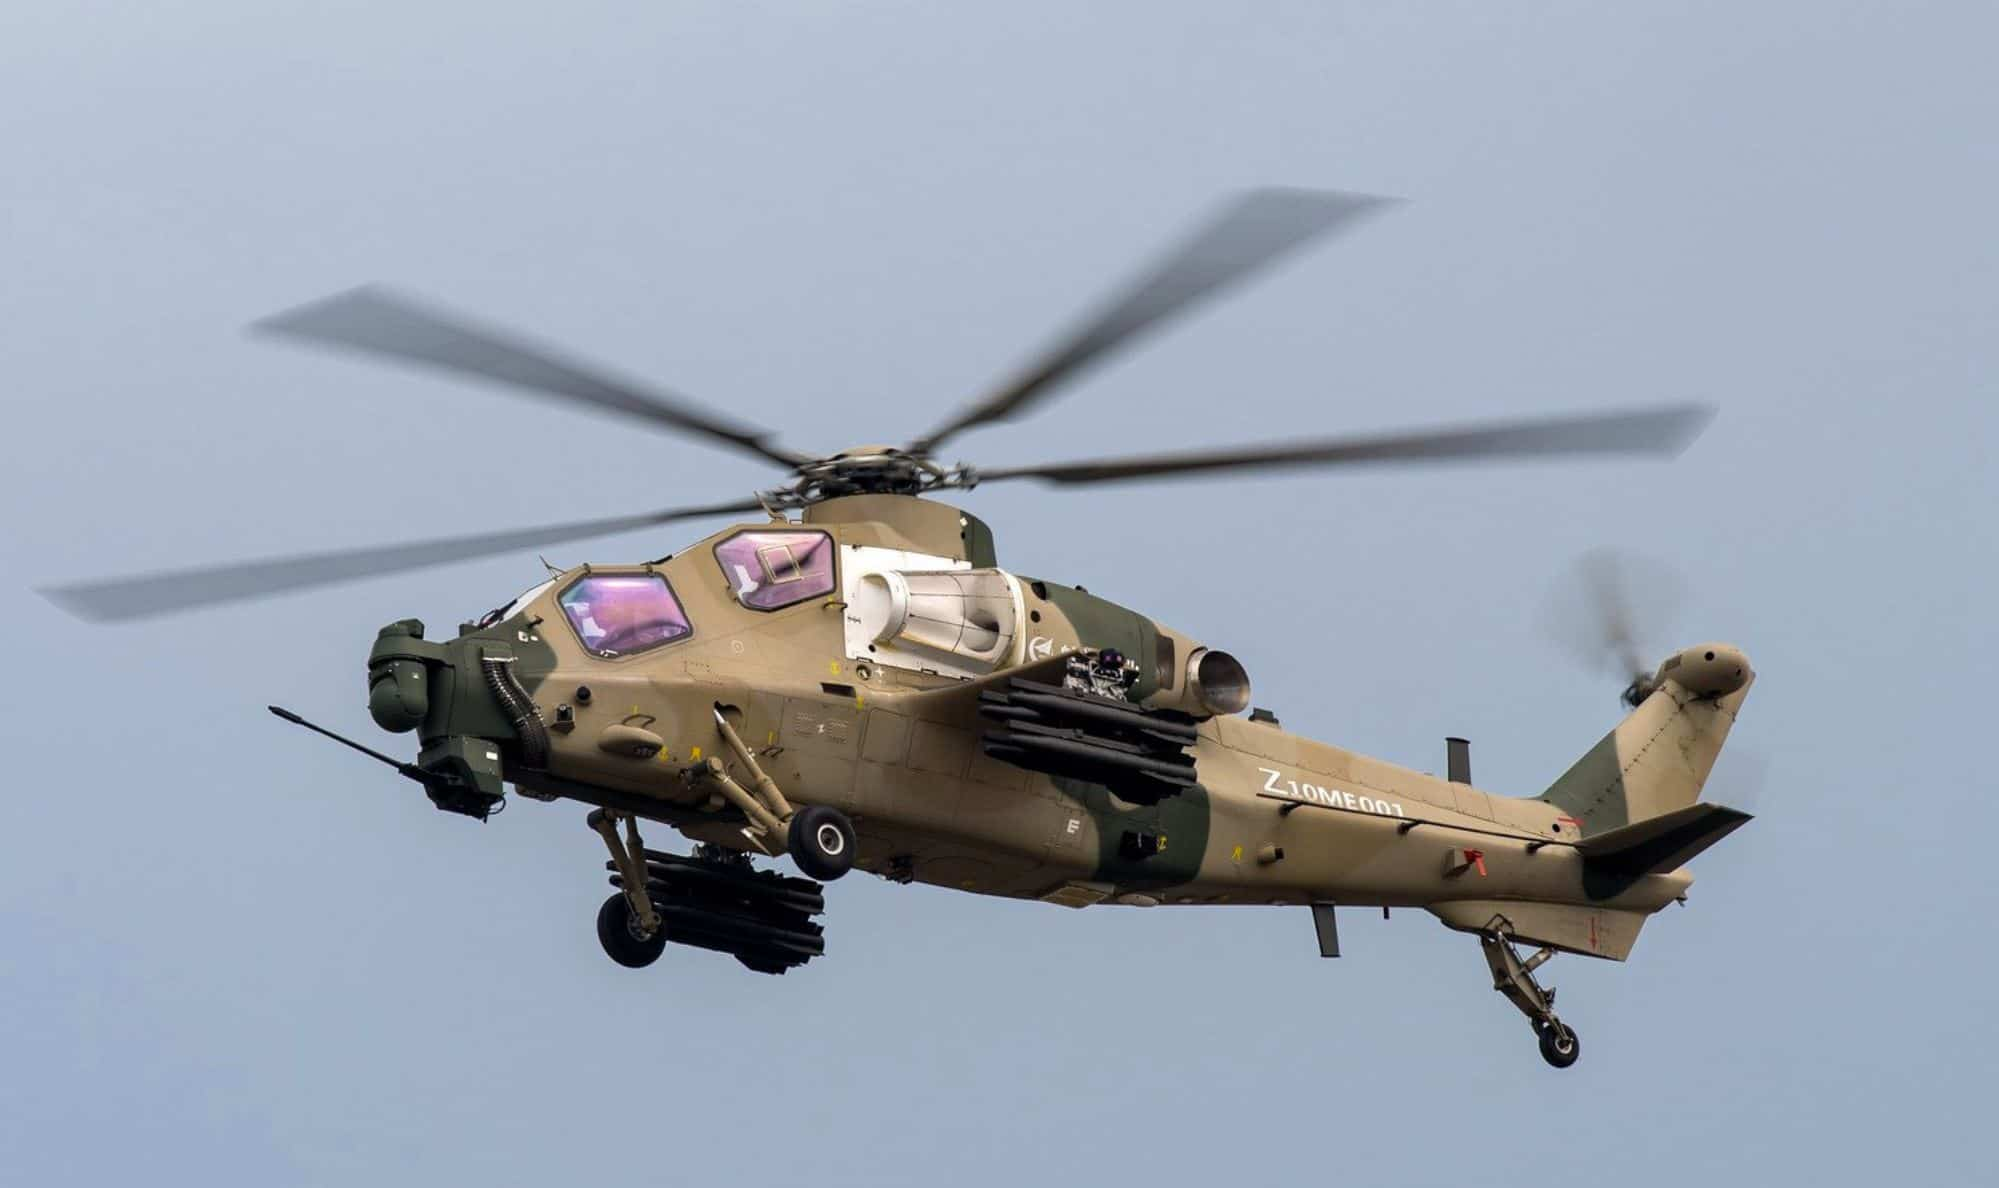 Pakistan received three attack helicopters Z-10 from China